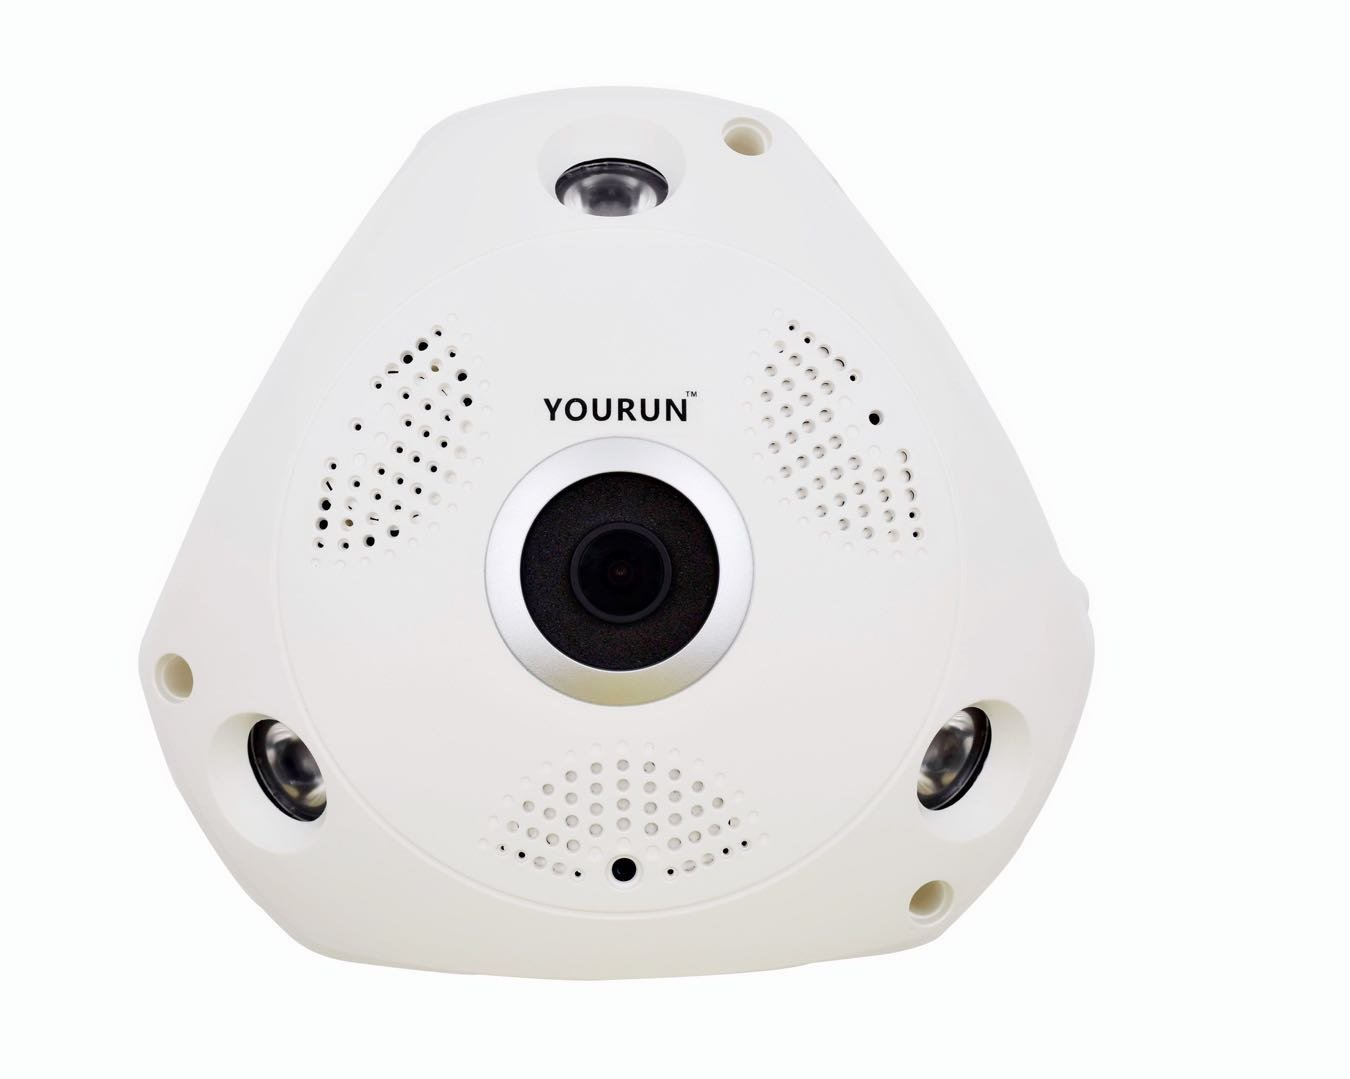 YOURUN 3D Panoramic Camera With 1.3Megapixel/960P/Wifi Connection/Cloud Service/Fisheye Lens/Support Micro SD Card/3W(Max)/DC 12V 1A/Work Between -10℃-50℃/IR Distance 5-10M/White